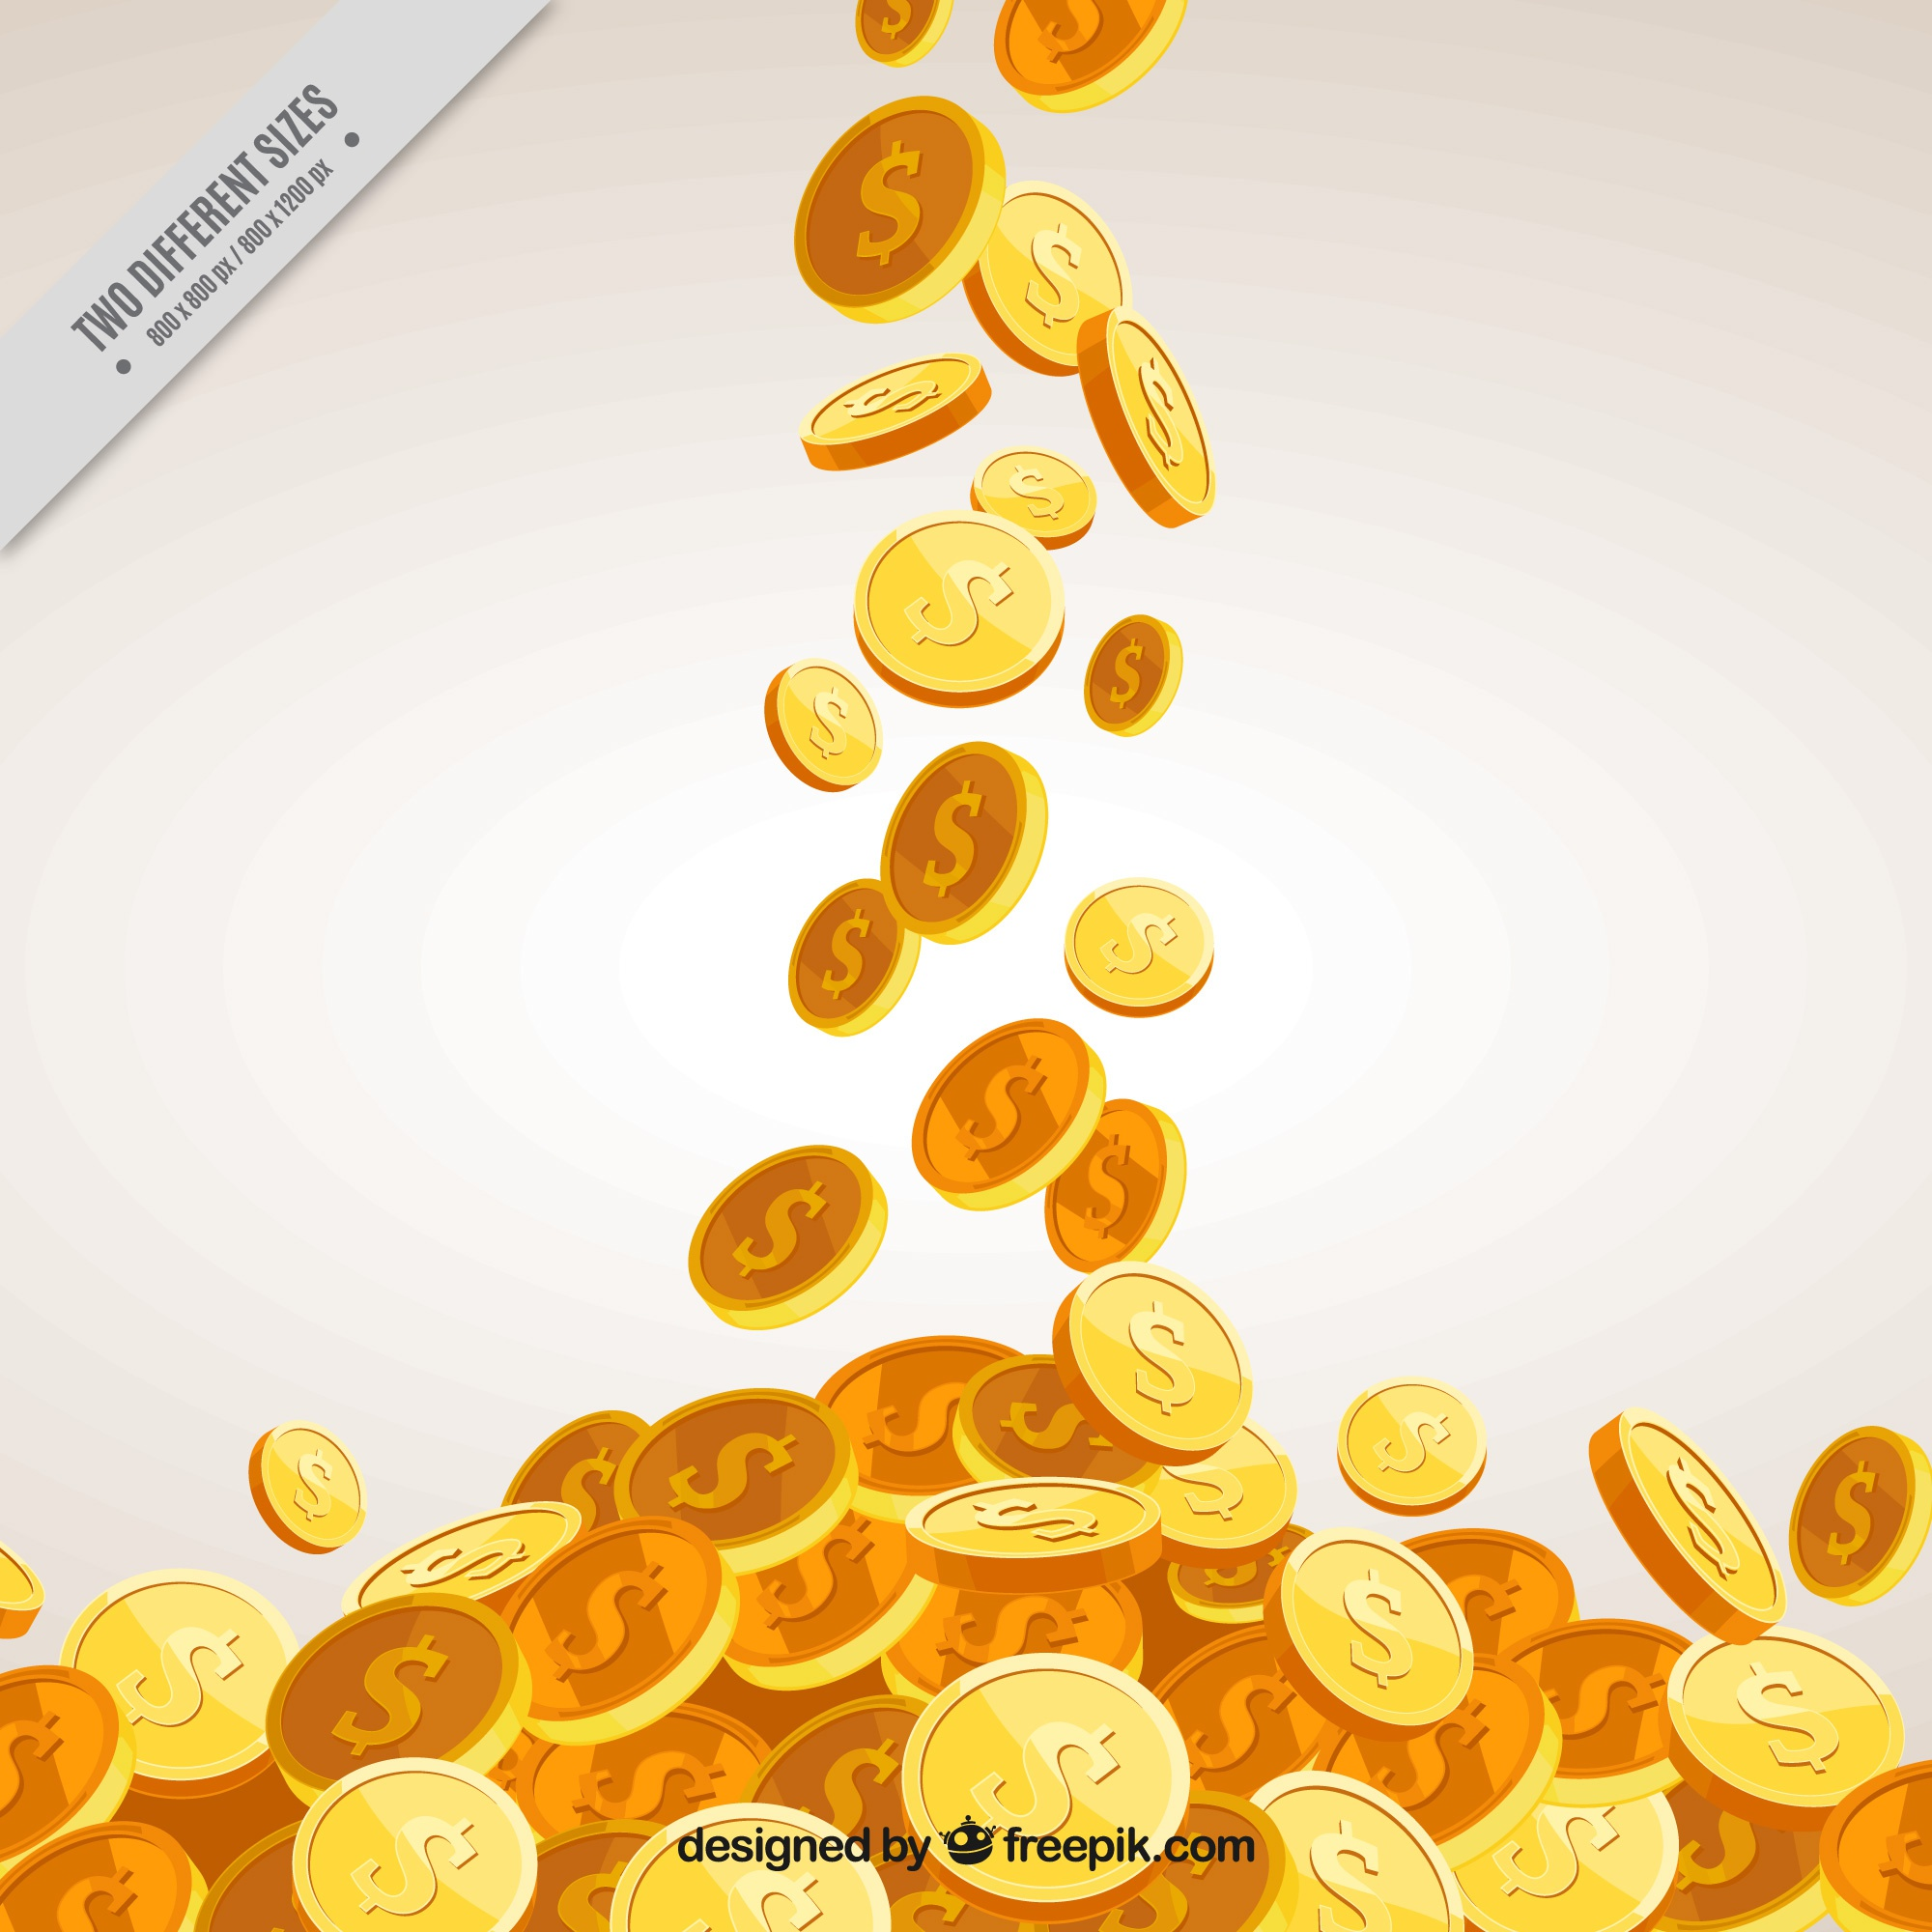 Money background with decorative golden coins